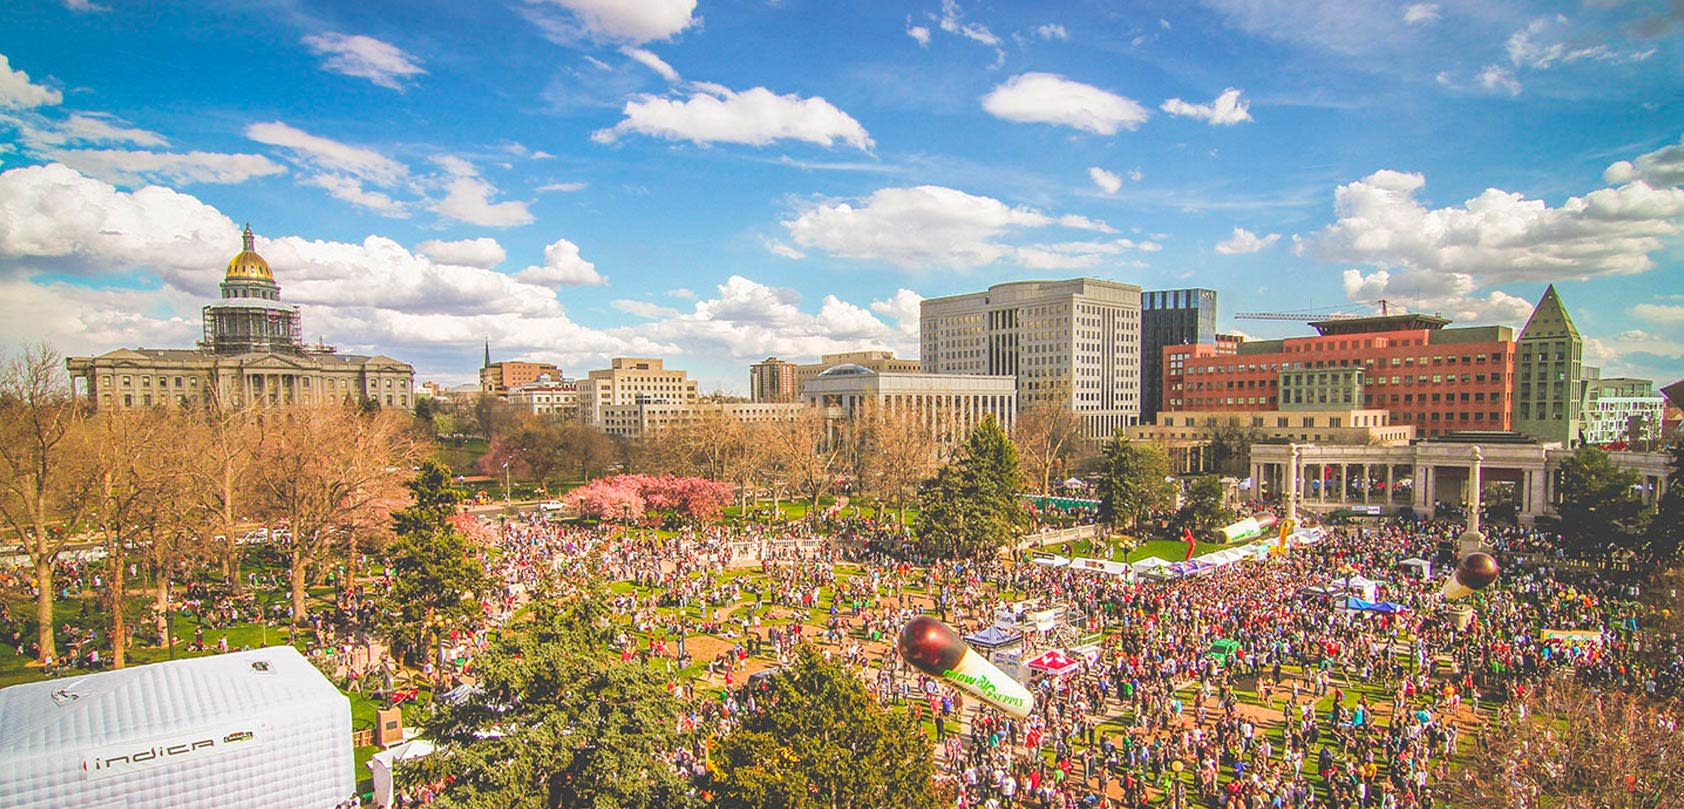 Native Roots Dispensary 420 Rally in Civic Center Park Denver Colorado 2016